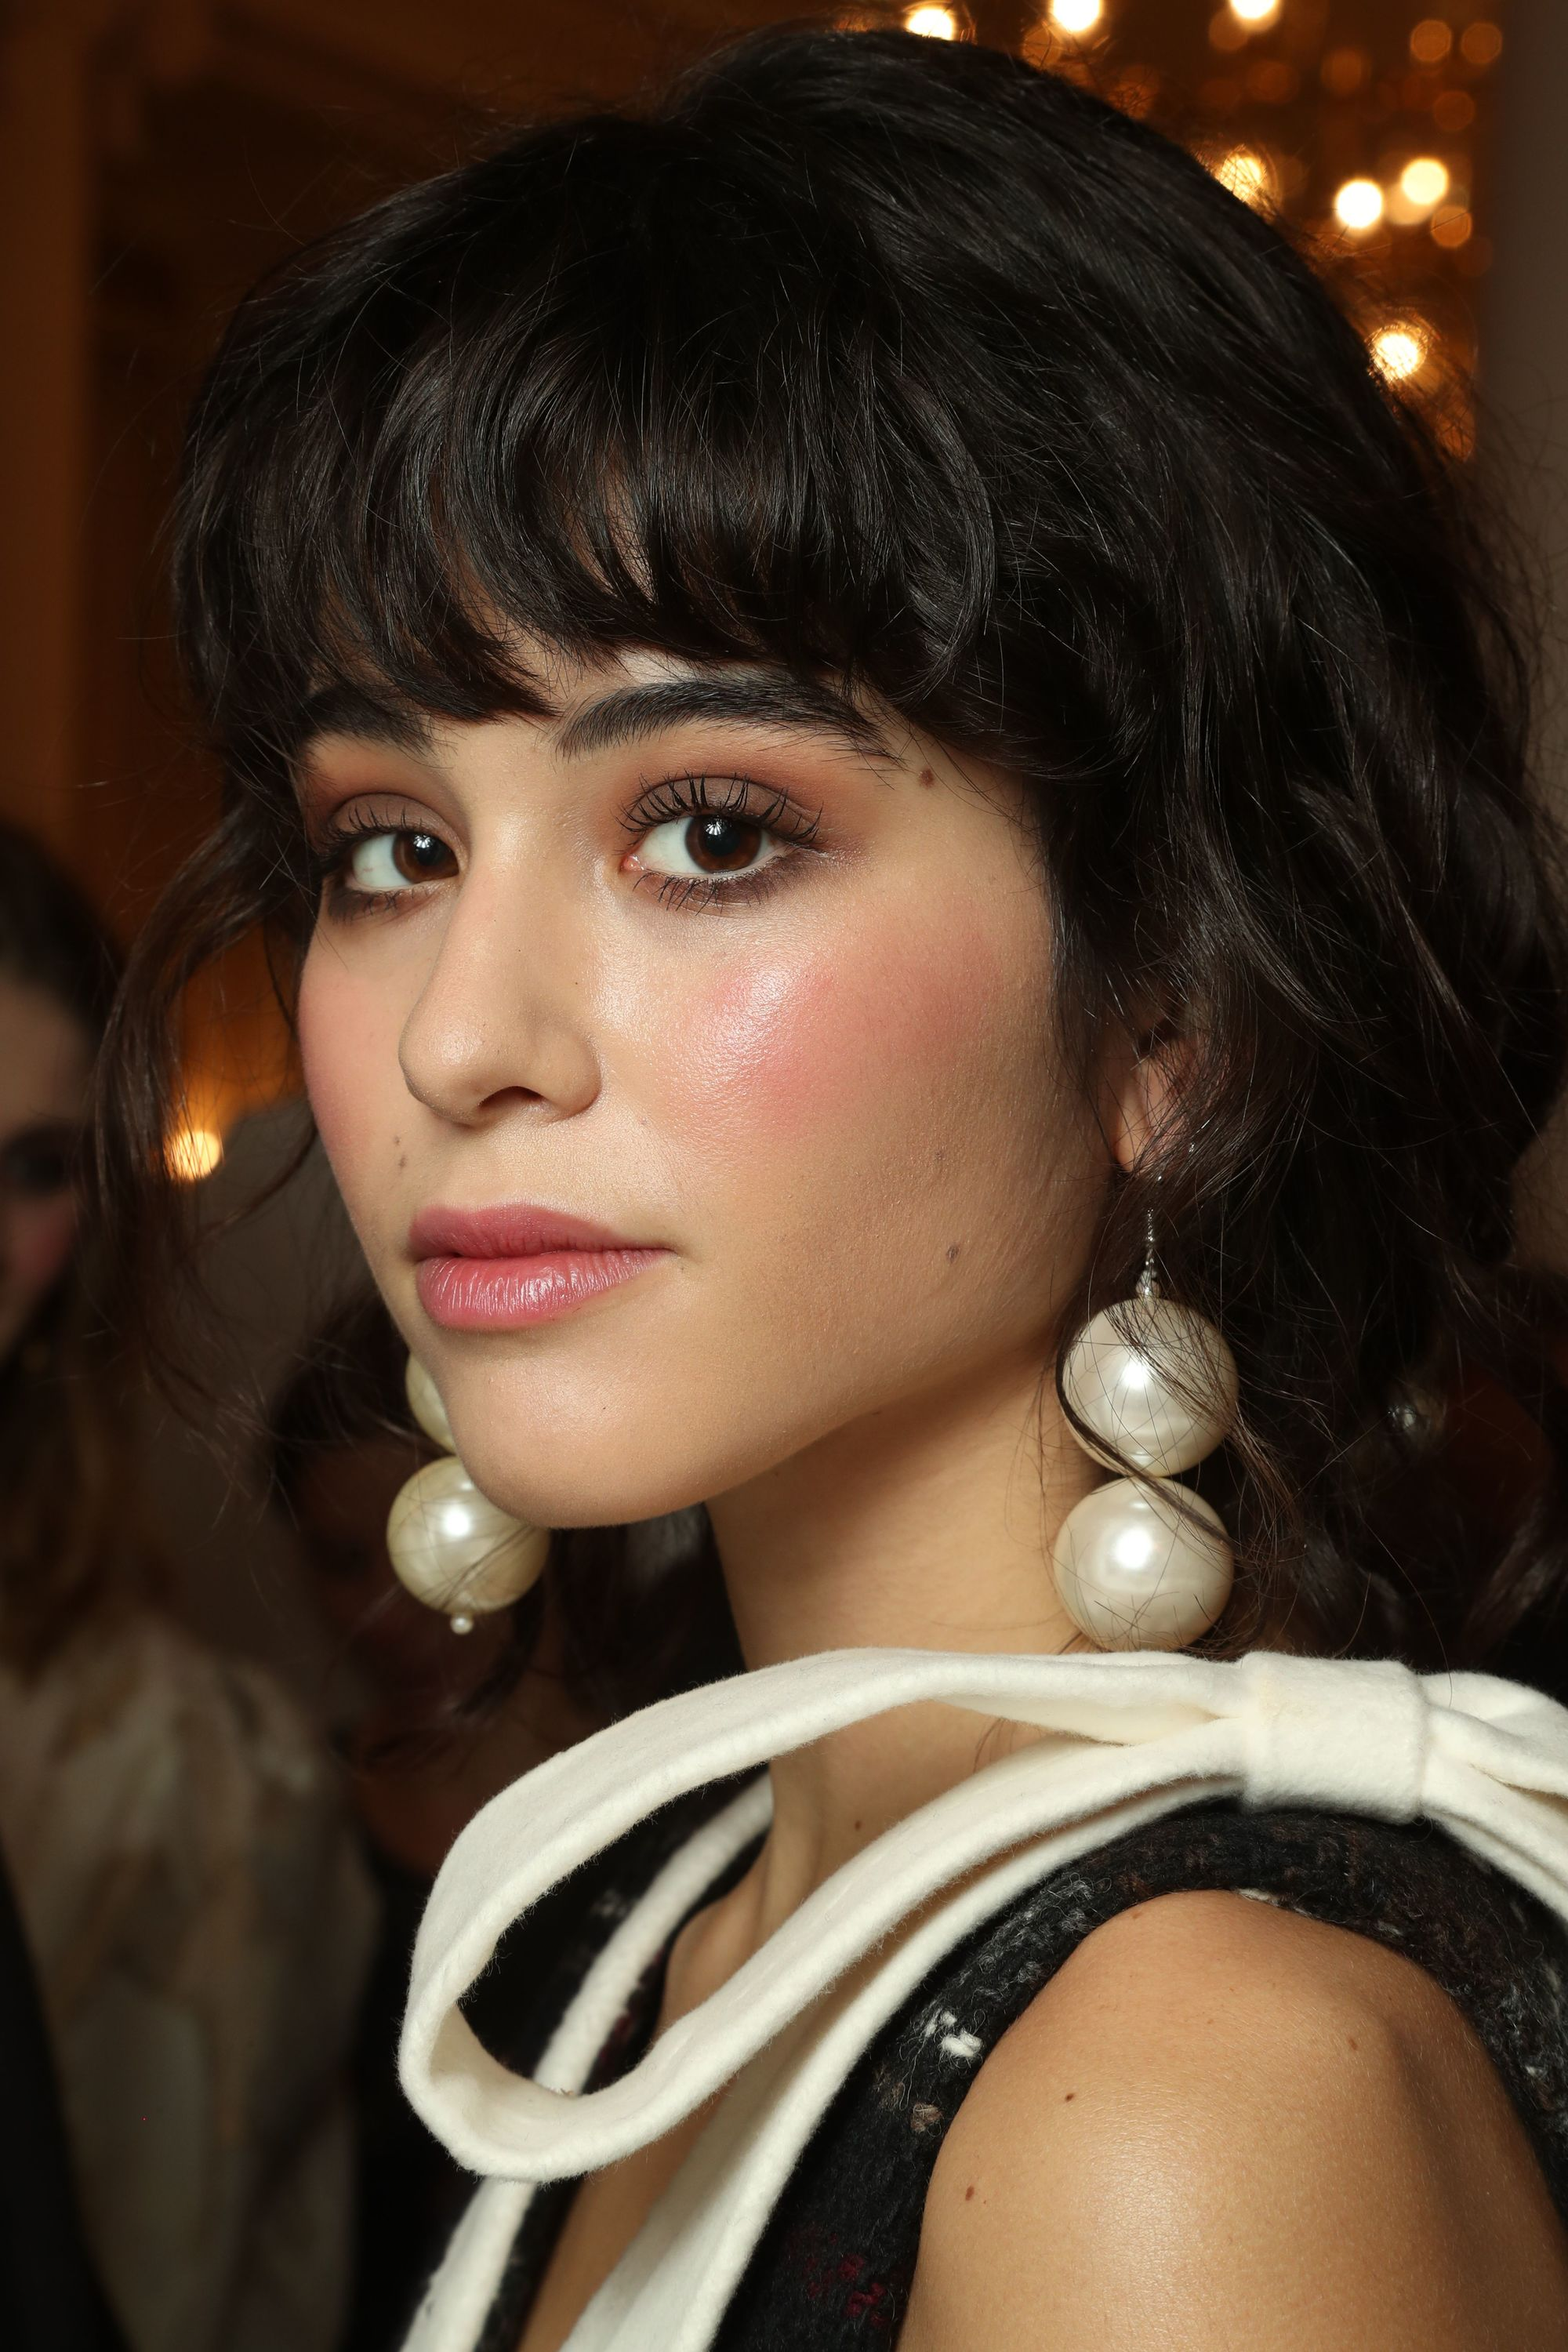 Haircuts for thick hair: Close-up backstage image of a model with dark brunette bowl cut hair with oversized pearl earrings.